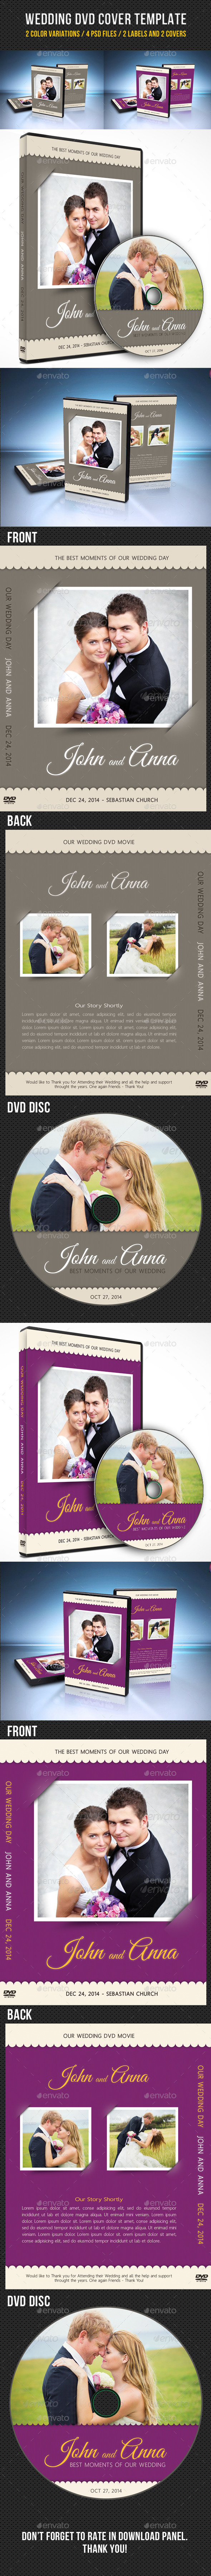 GraphicRiver Wedding DVD Cover Template 08 9095111